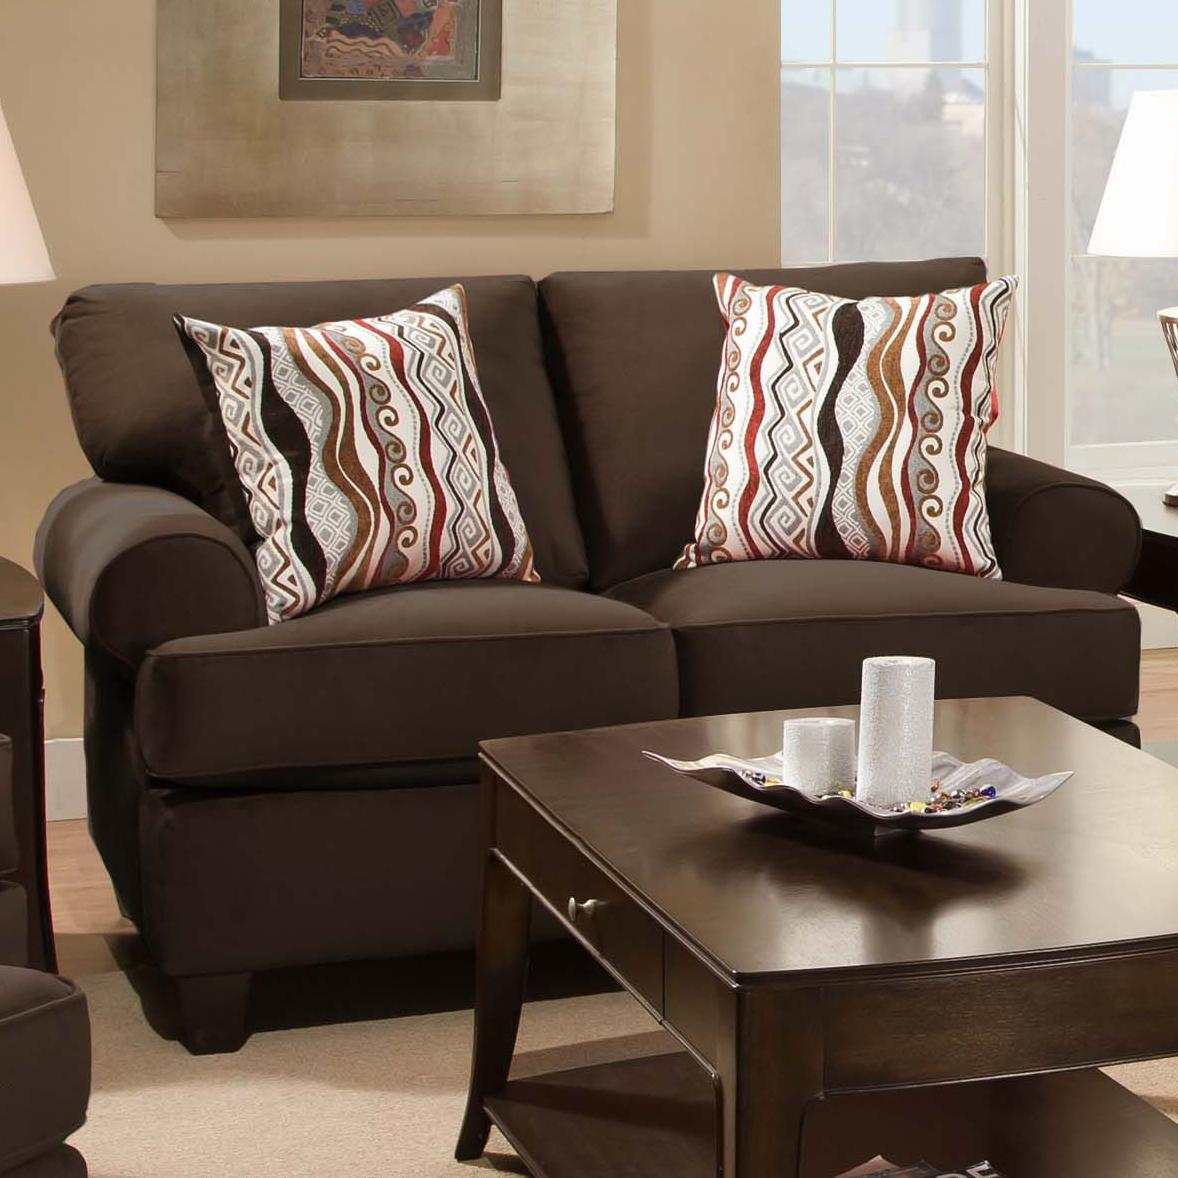 47A0  Loveseat at Ruby Gordon Home